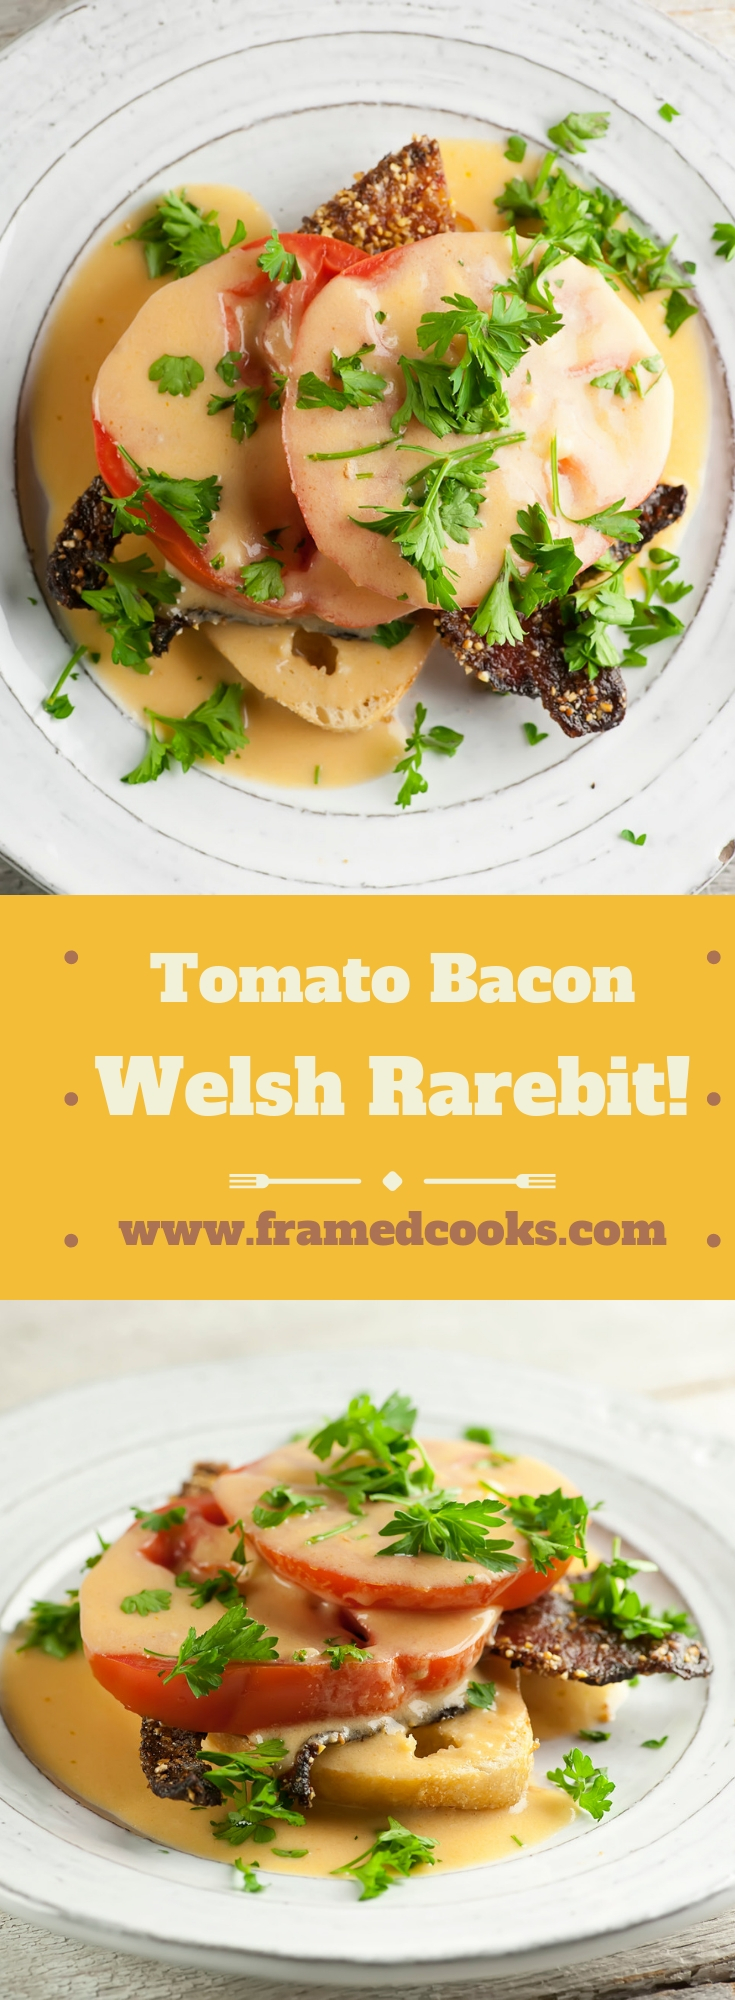 This classic dish of bread with melted cheese (also known as Welsh Rabbit) gets a flavor boost with this easy recipe for tomato and bacon Welsh Rarebit!